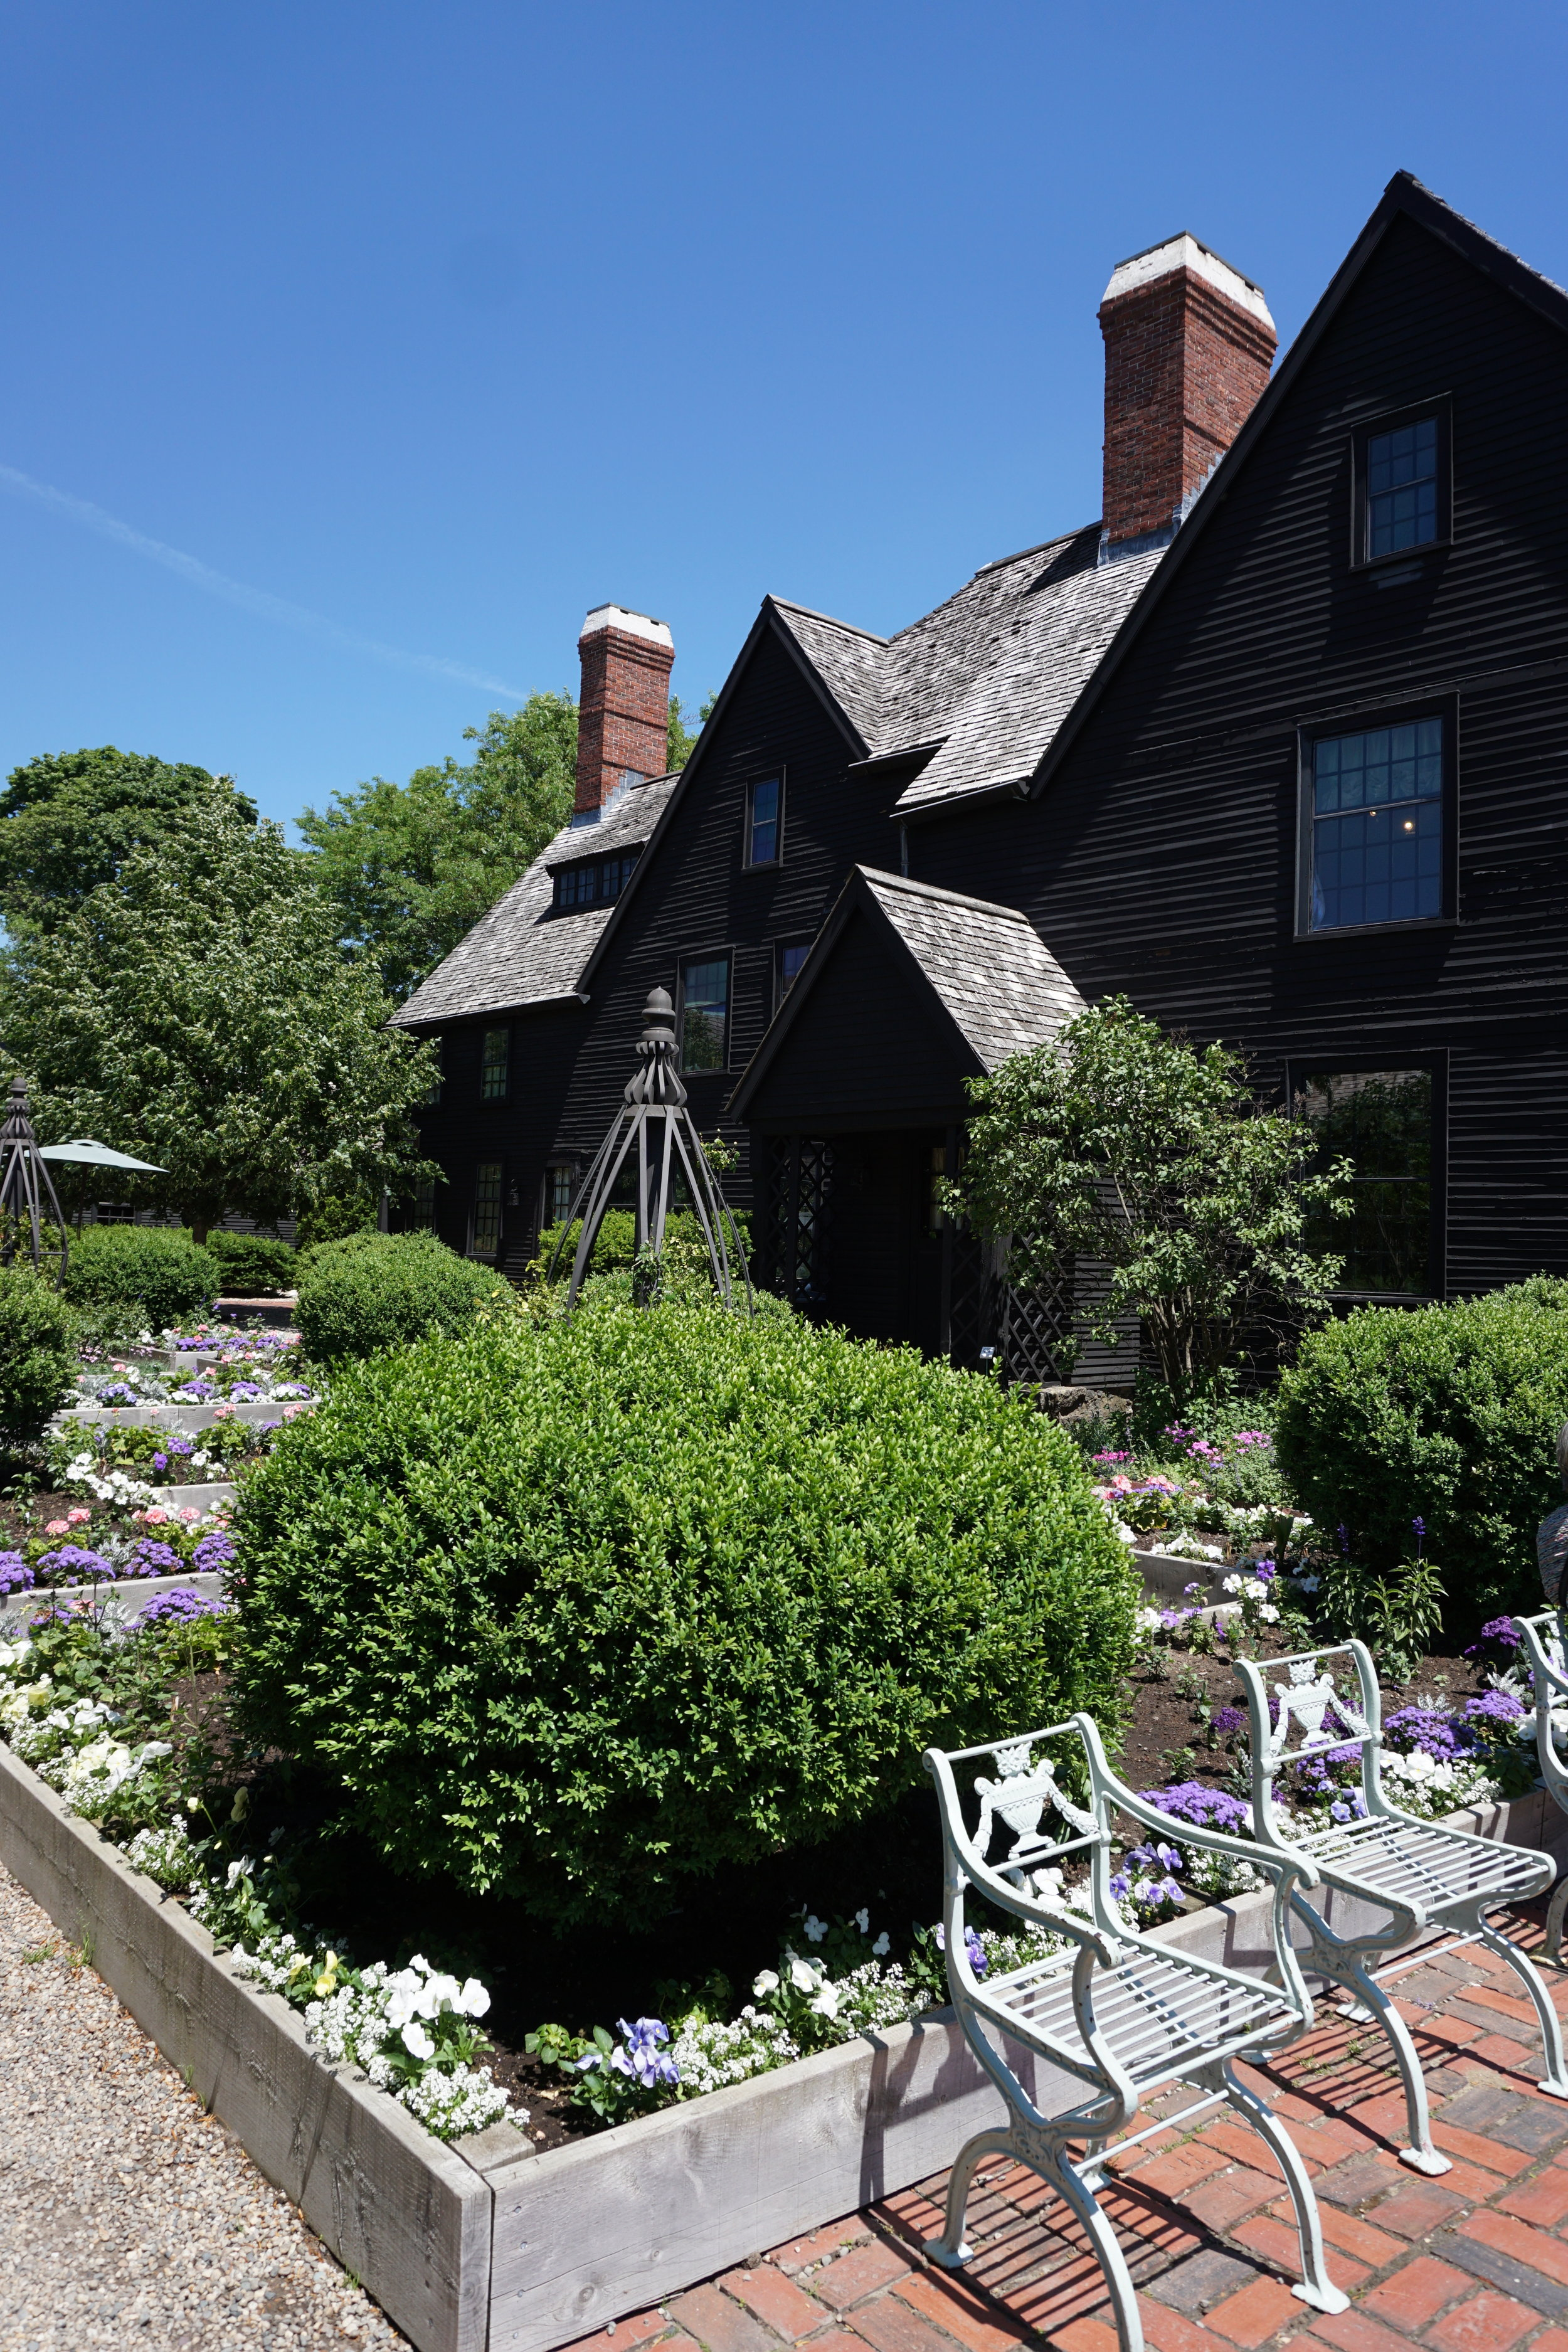 In the garden at The House of Seven Gables.